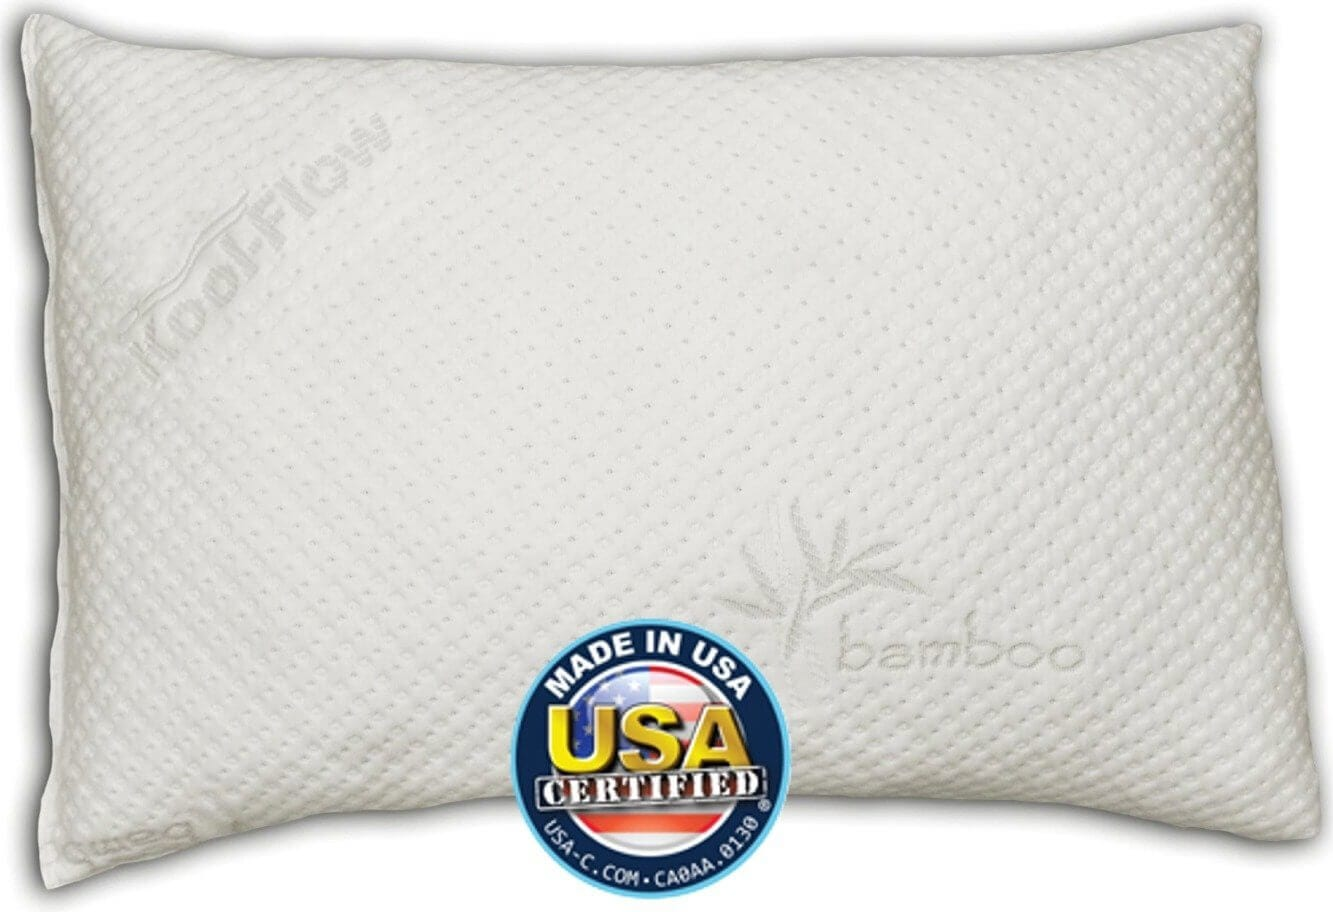 SnugglePedic UltraLuxury Shredded Memory Foam Pillow Review